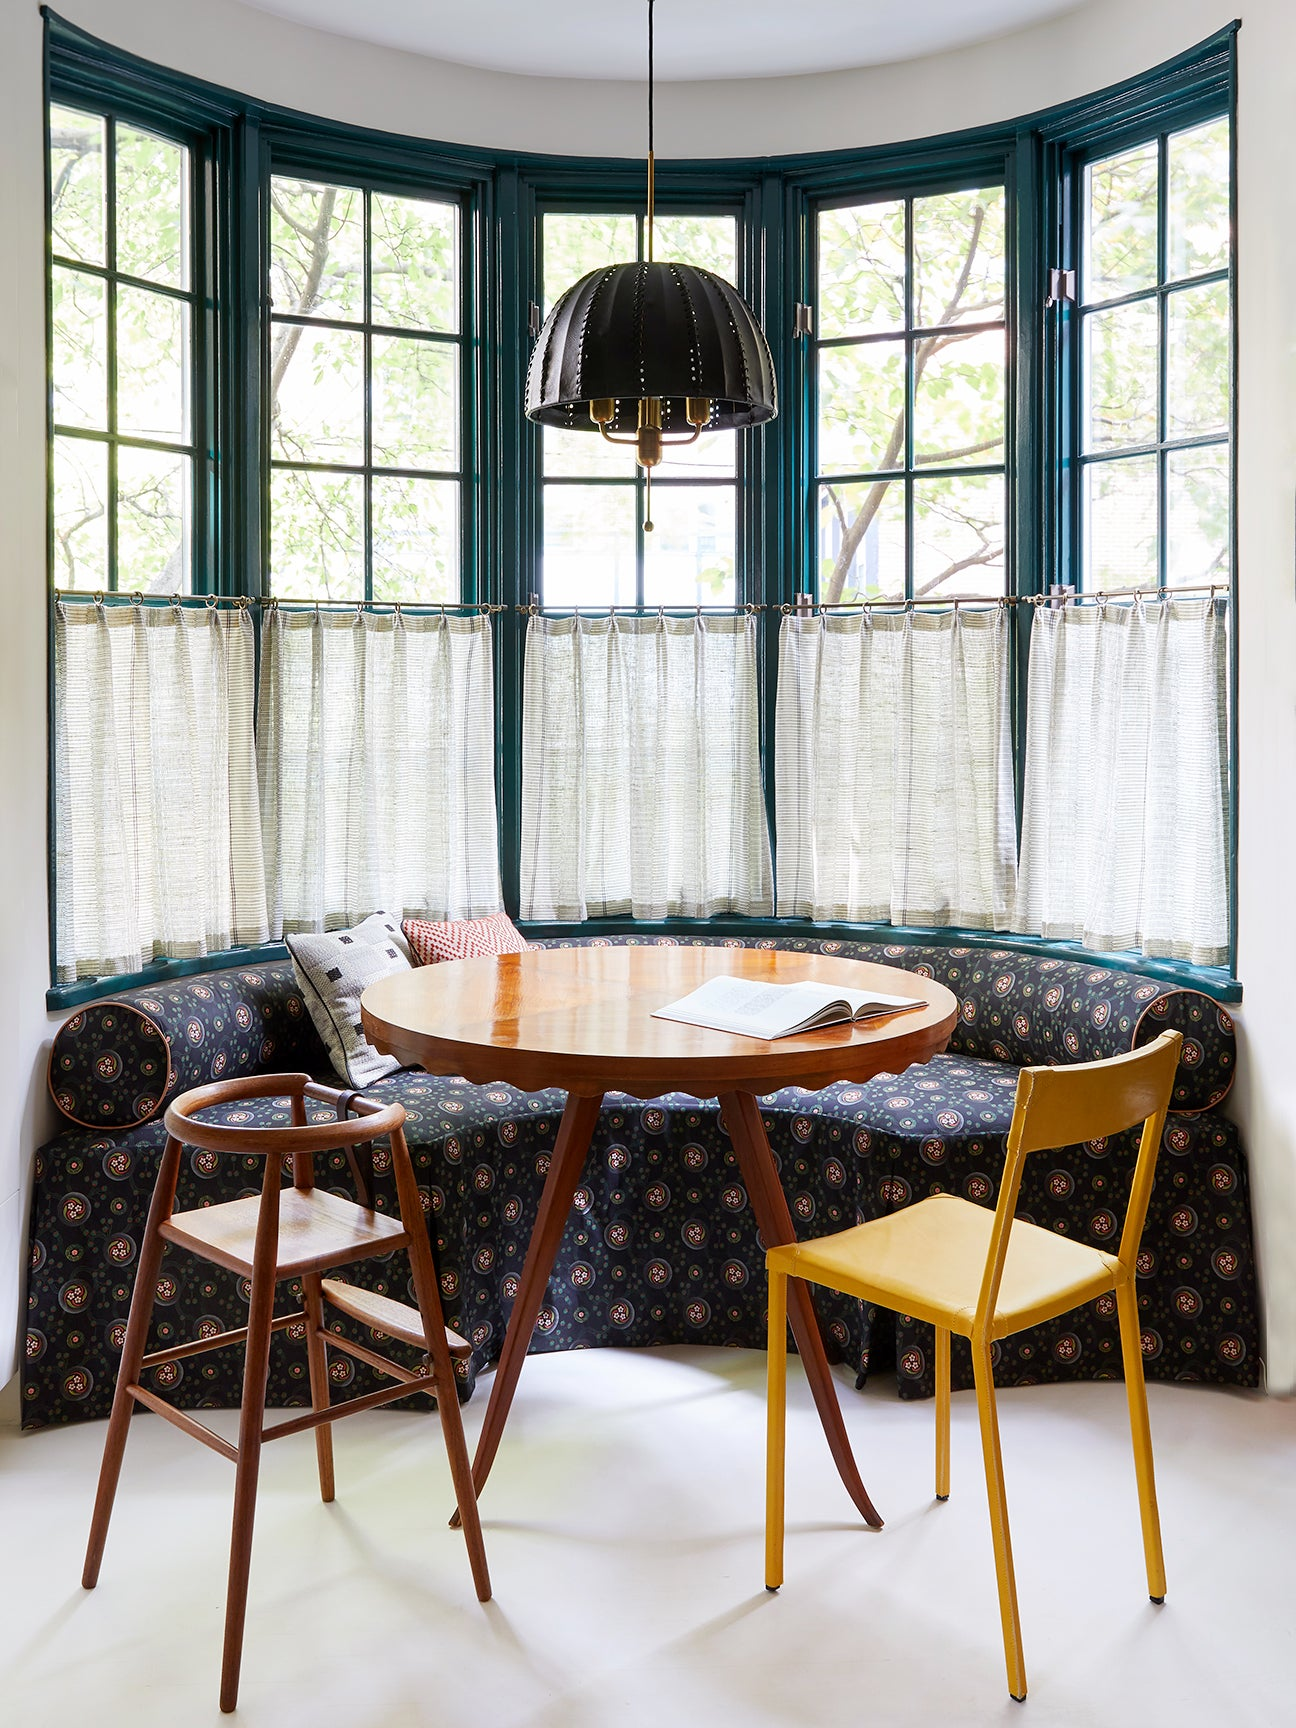 Curbed Breakfast Nook With Banquette